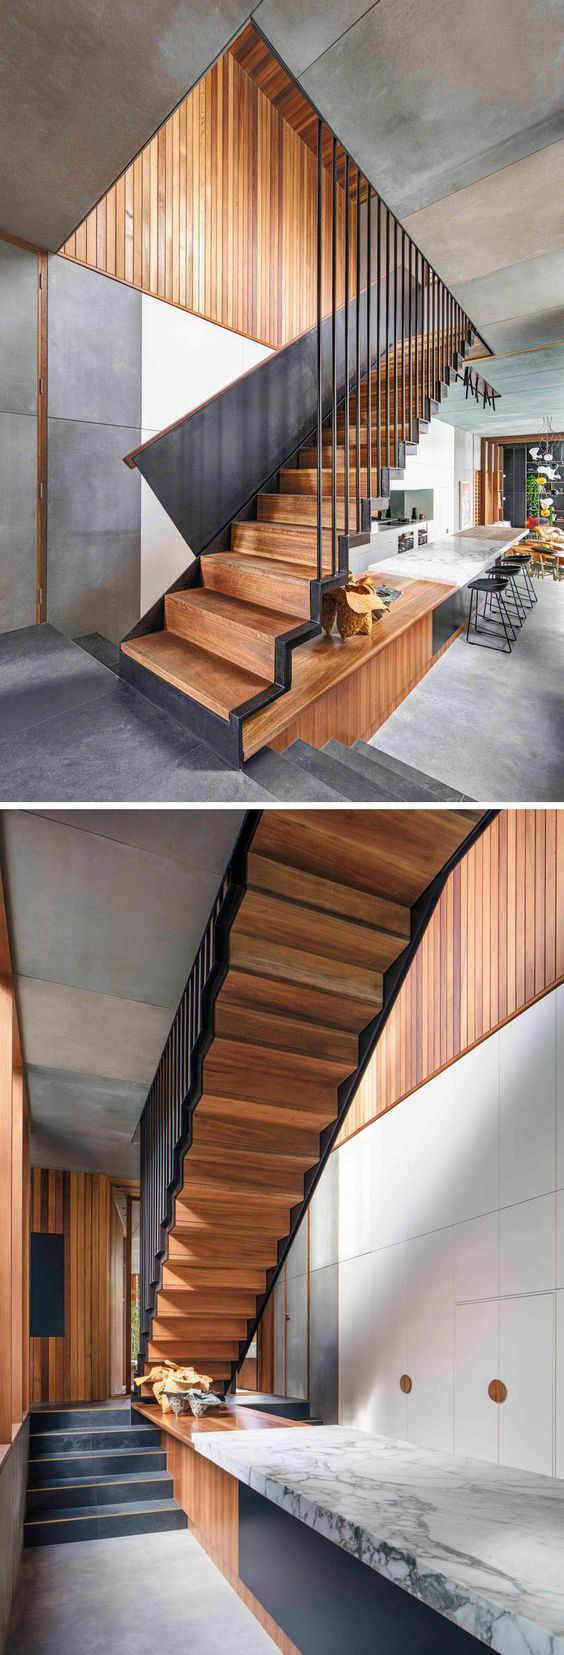 die besten 25 schmale treppe ideen auf pinterest treppe schmales haus schmaler. Black Bedroom Furniture Sets. Home Design Ideas